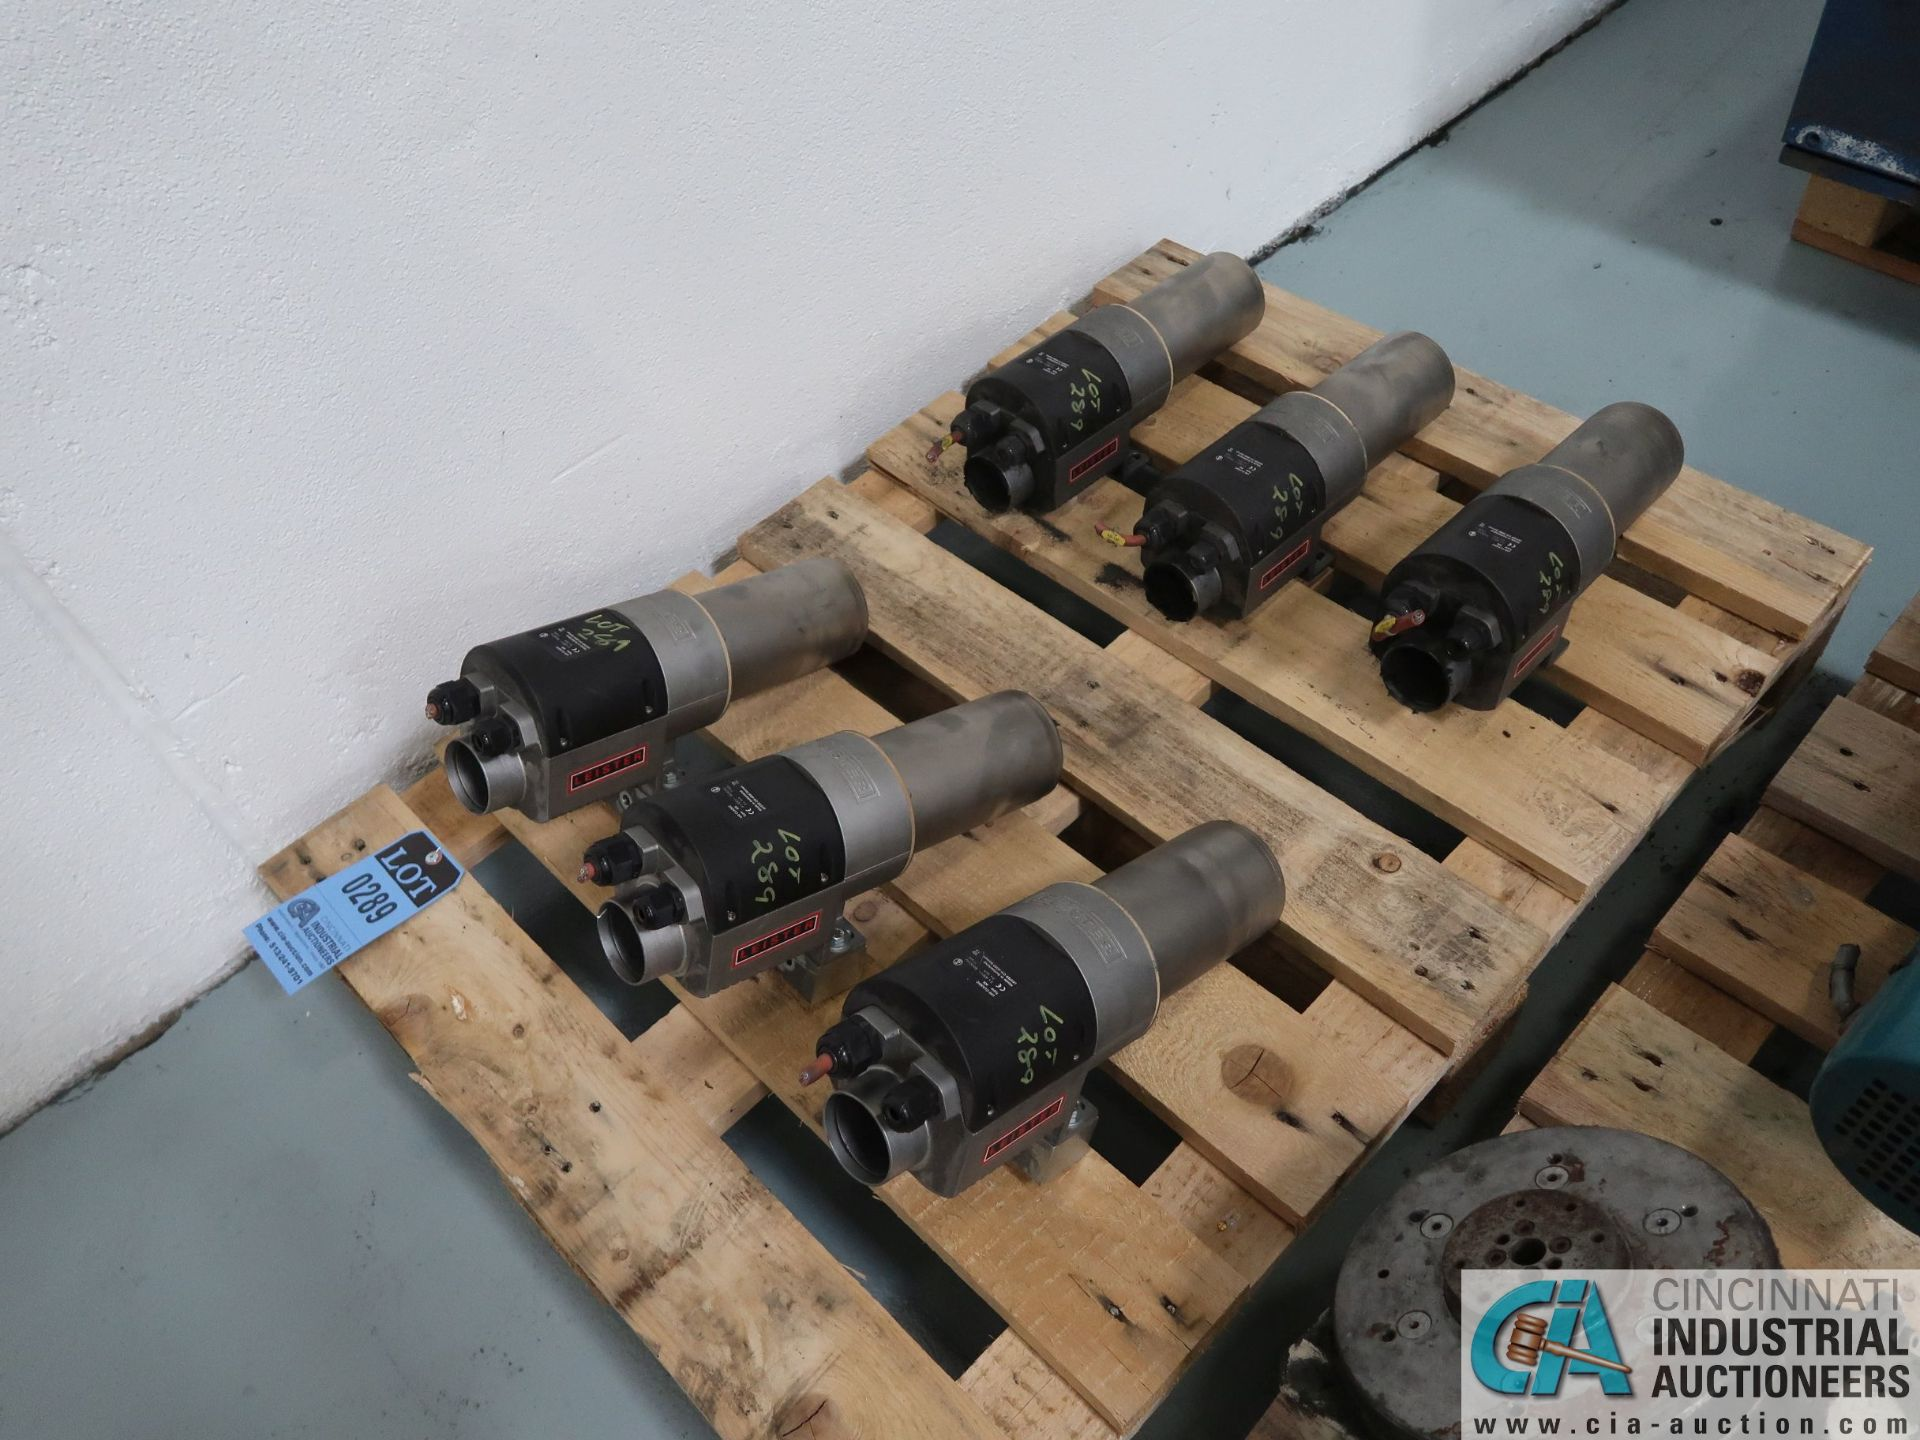 Lot 289 - 11 KW LEISTER BLOWER MOTORS *$25.00 RIGGING FEE DUE TO INDUSTRIAL SERVICES AND SALES*